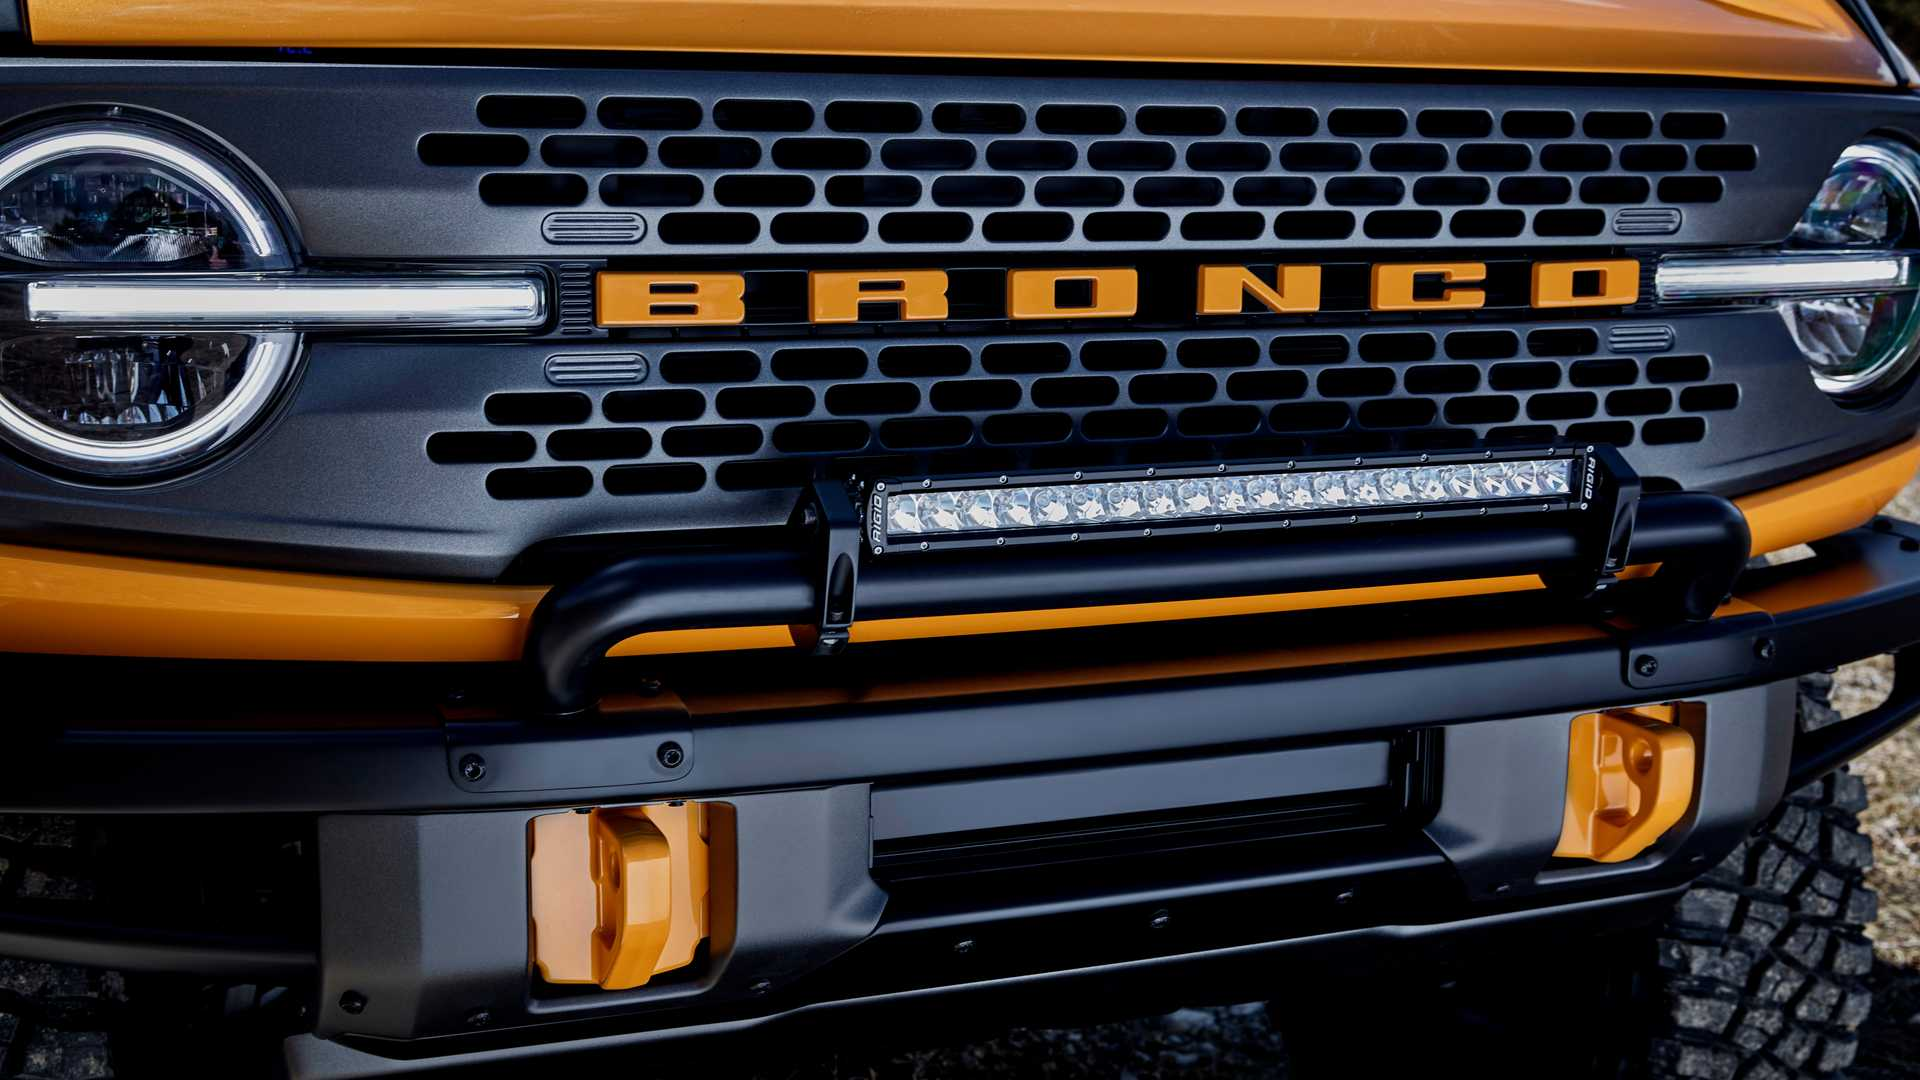 2021 Ford Bronco Grille